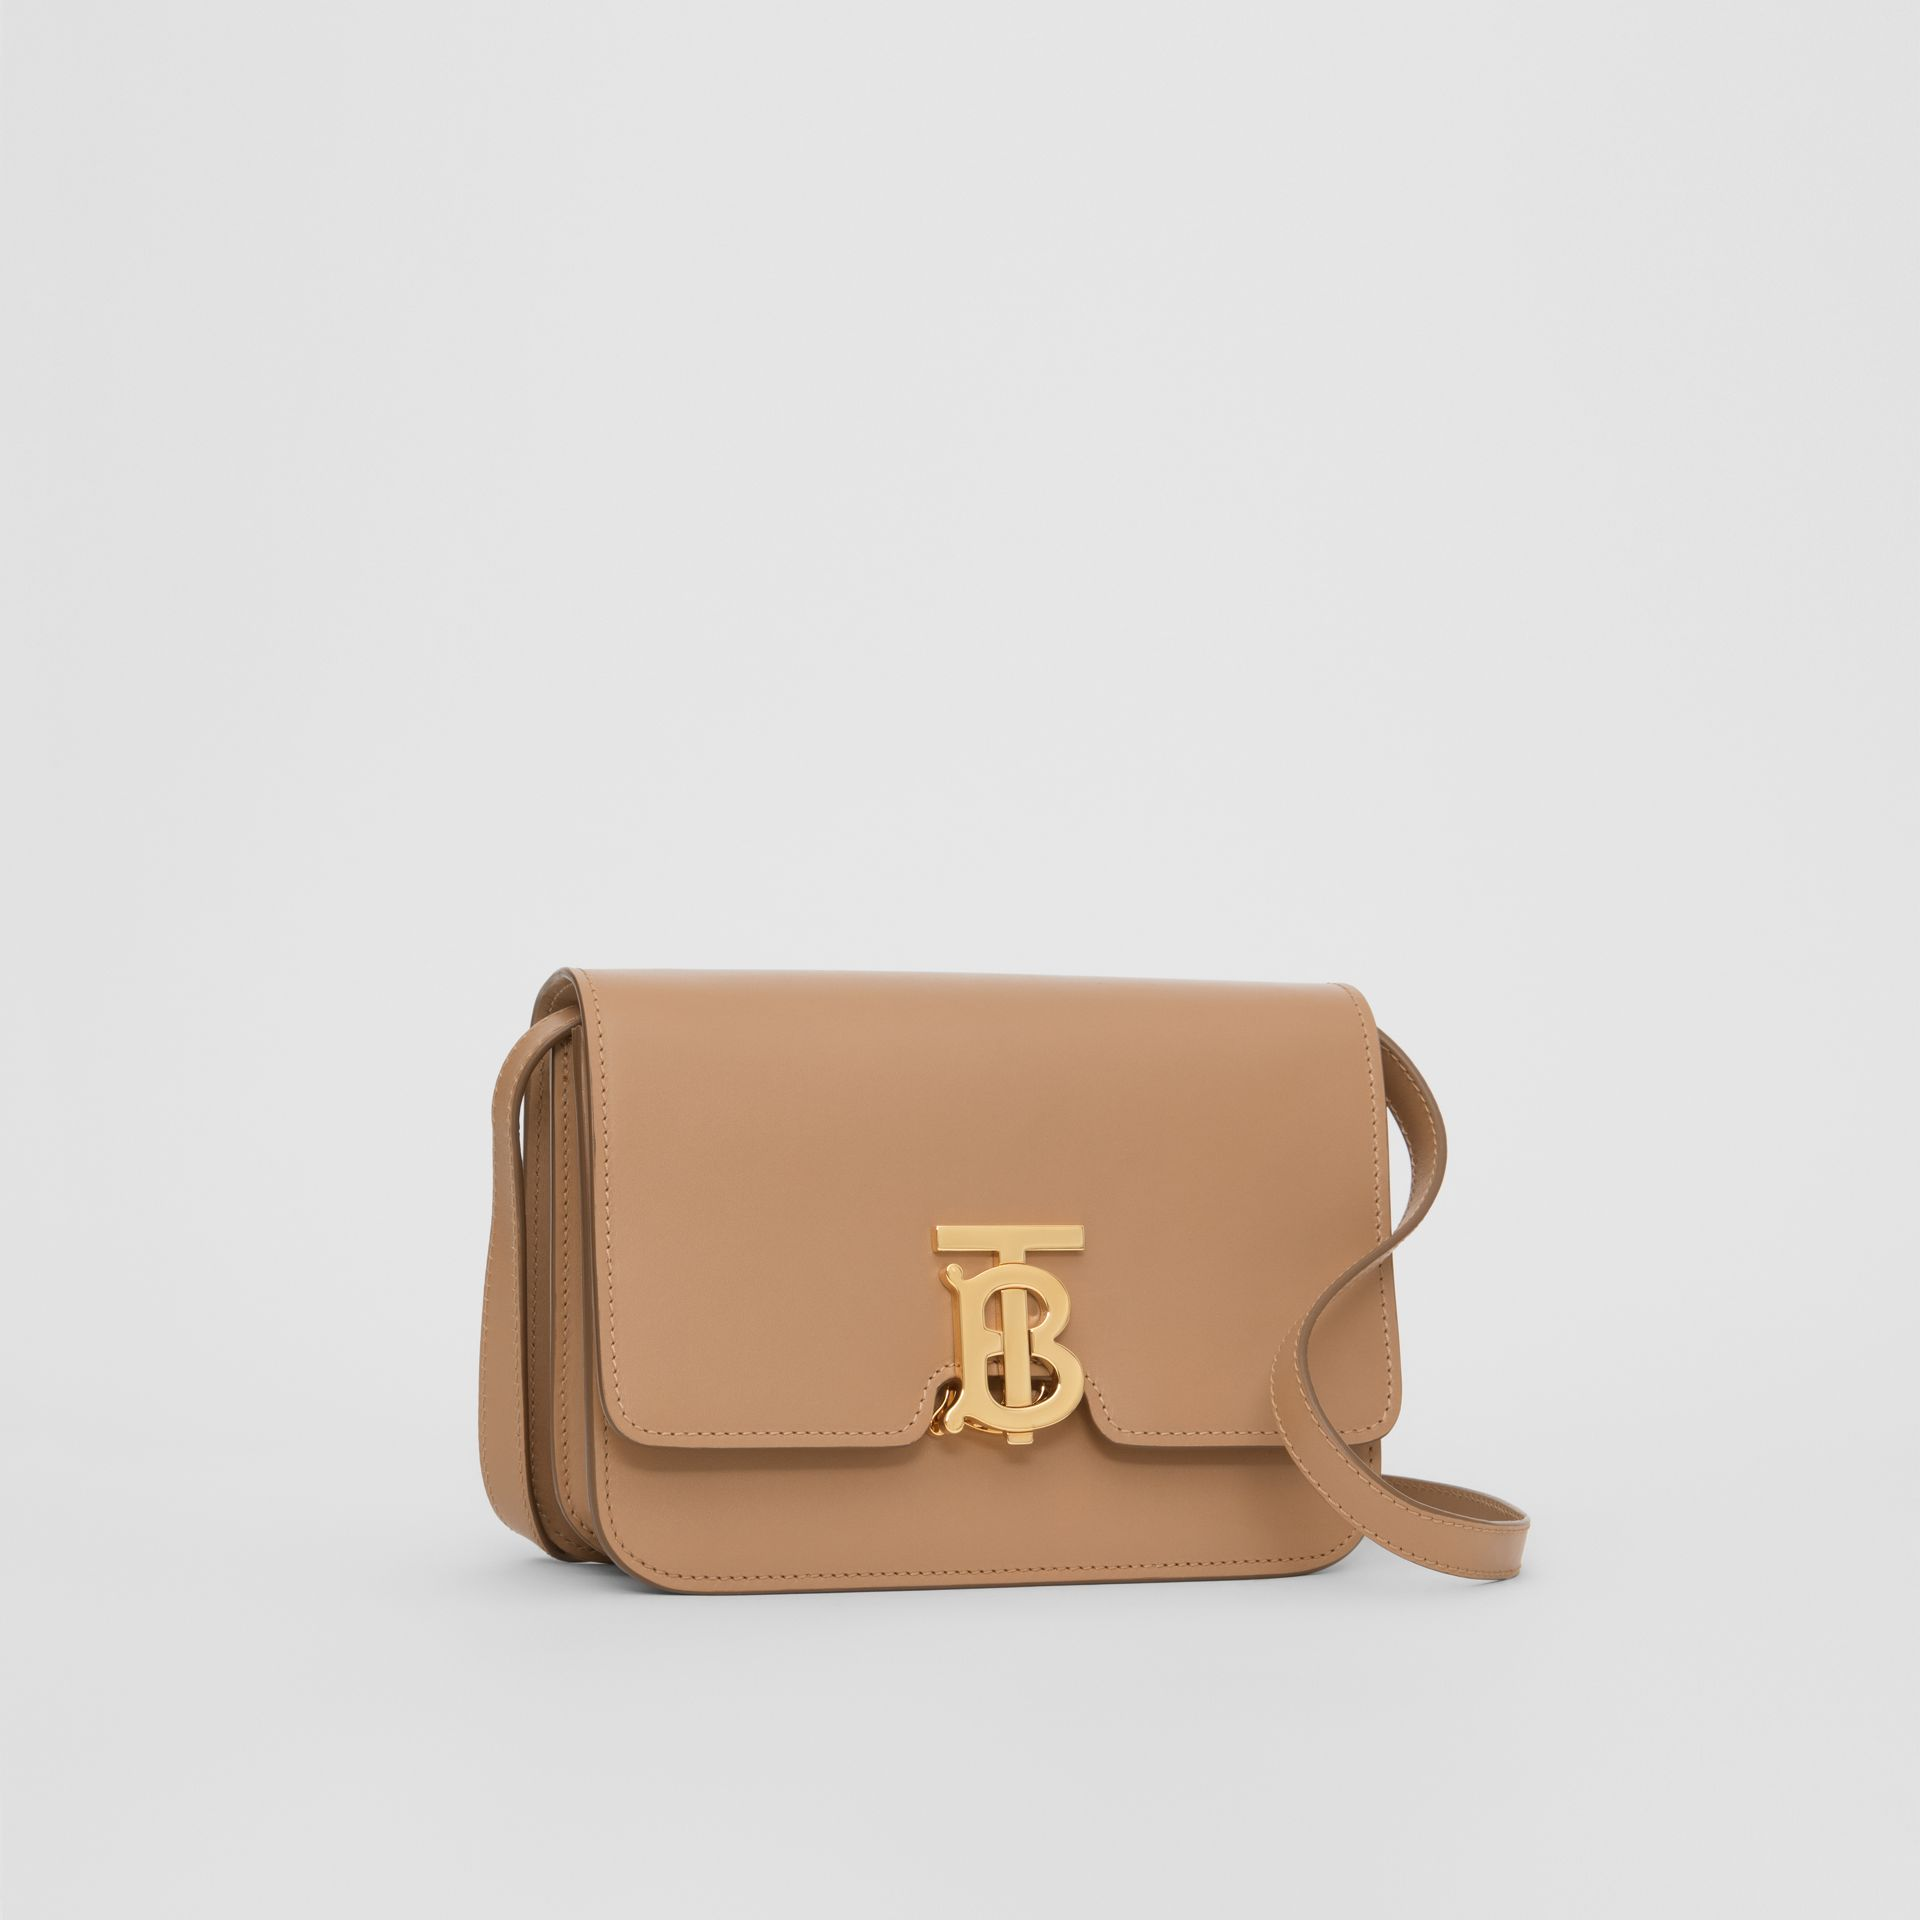 Small Leather TB Bag in Light Camel - Women | Burberry - gallery image 4